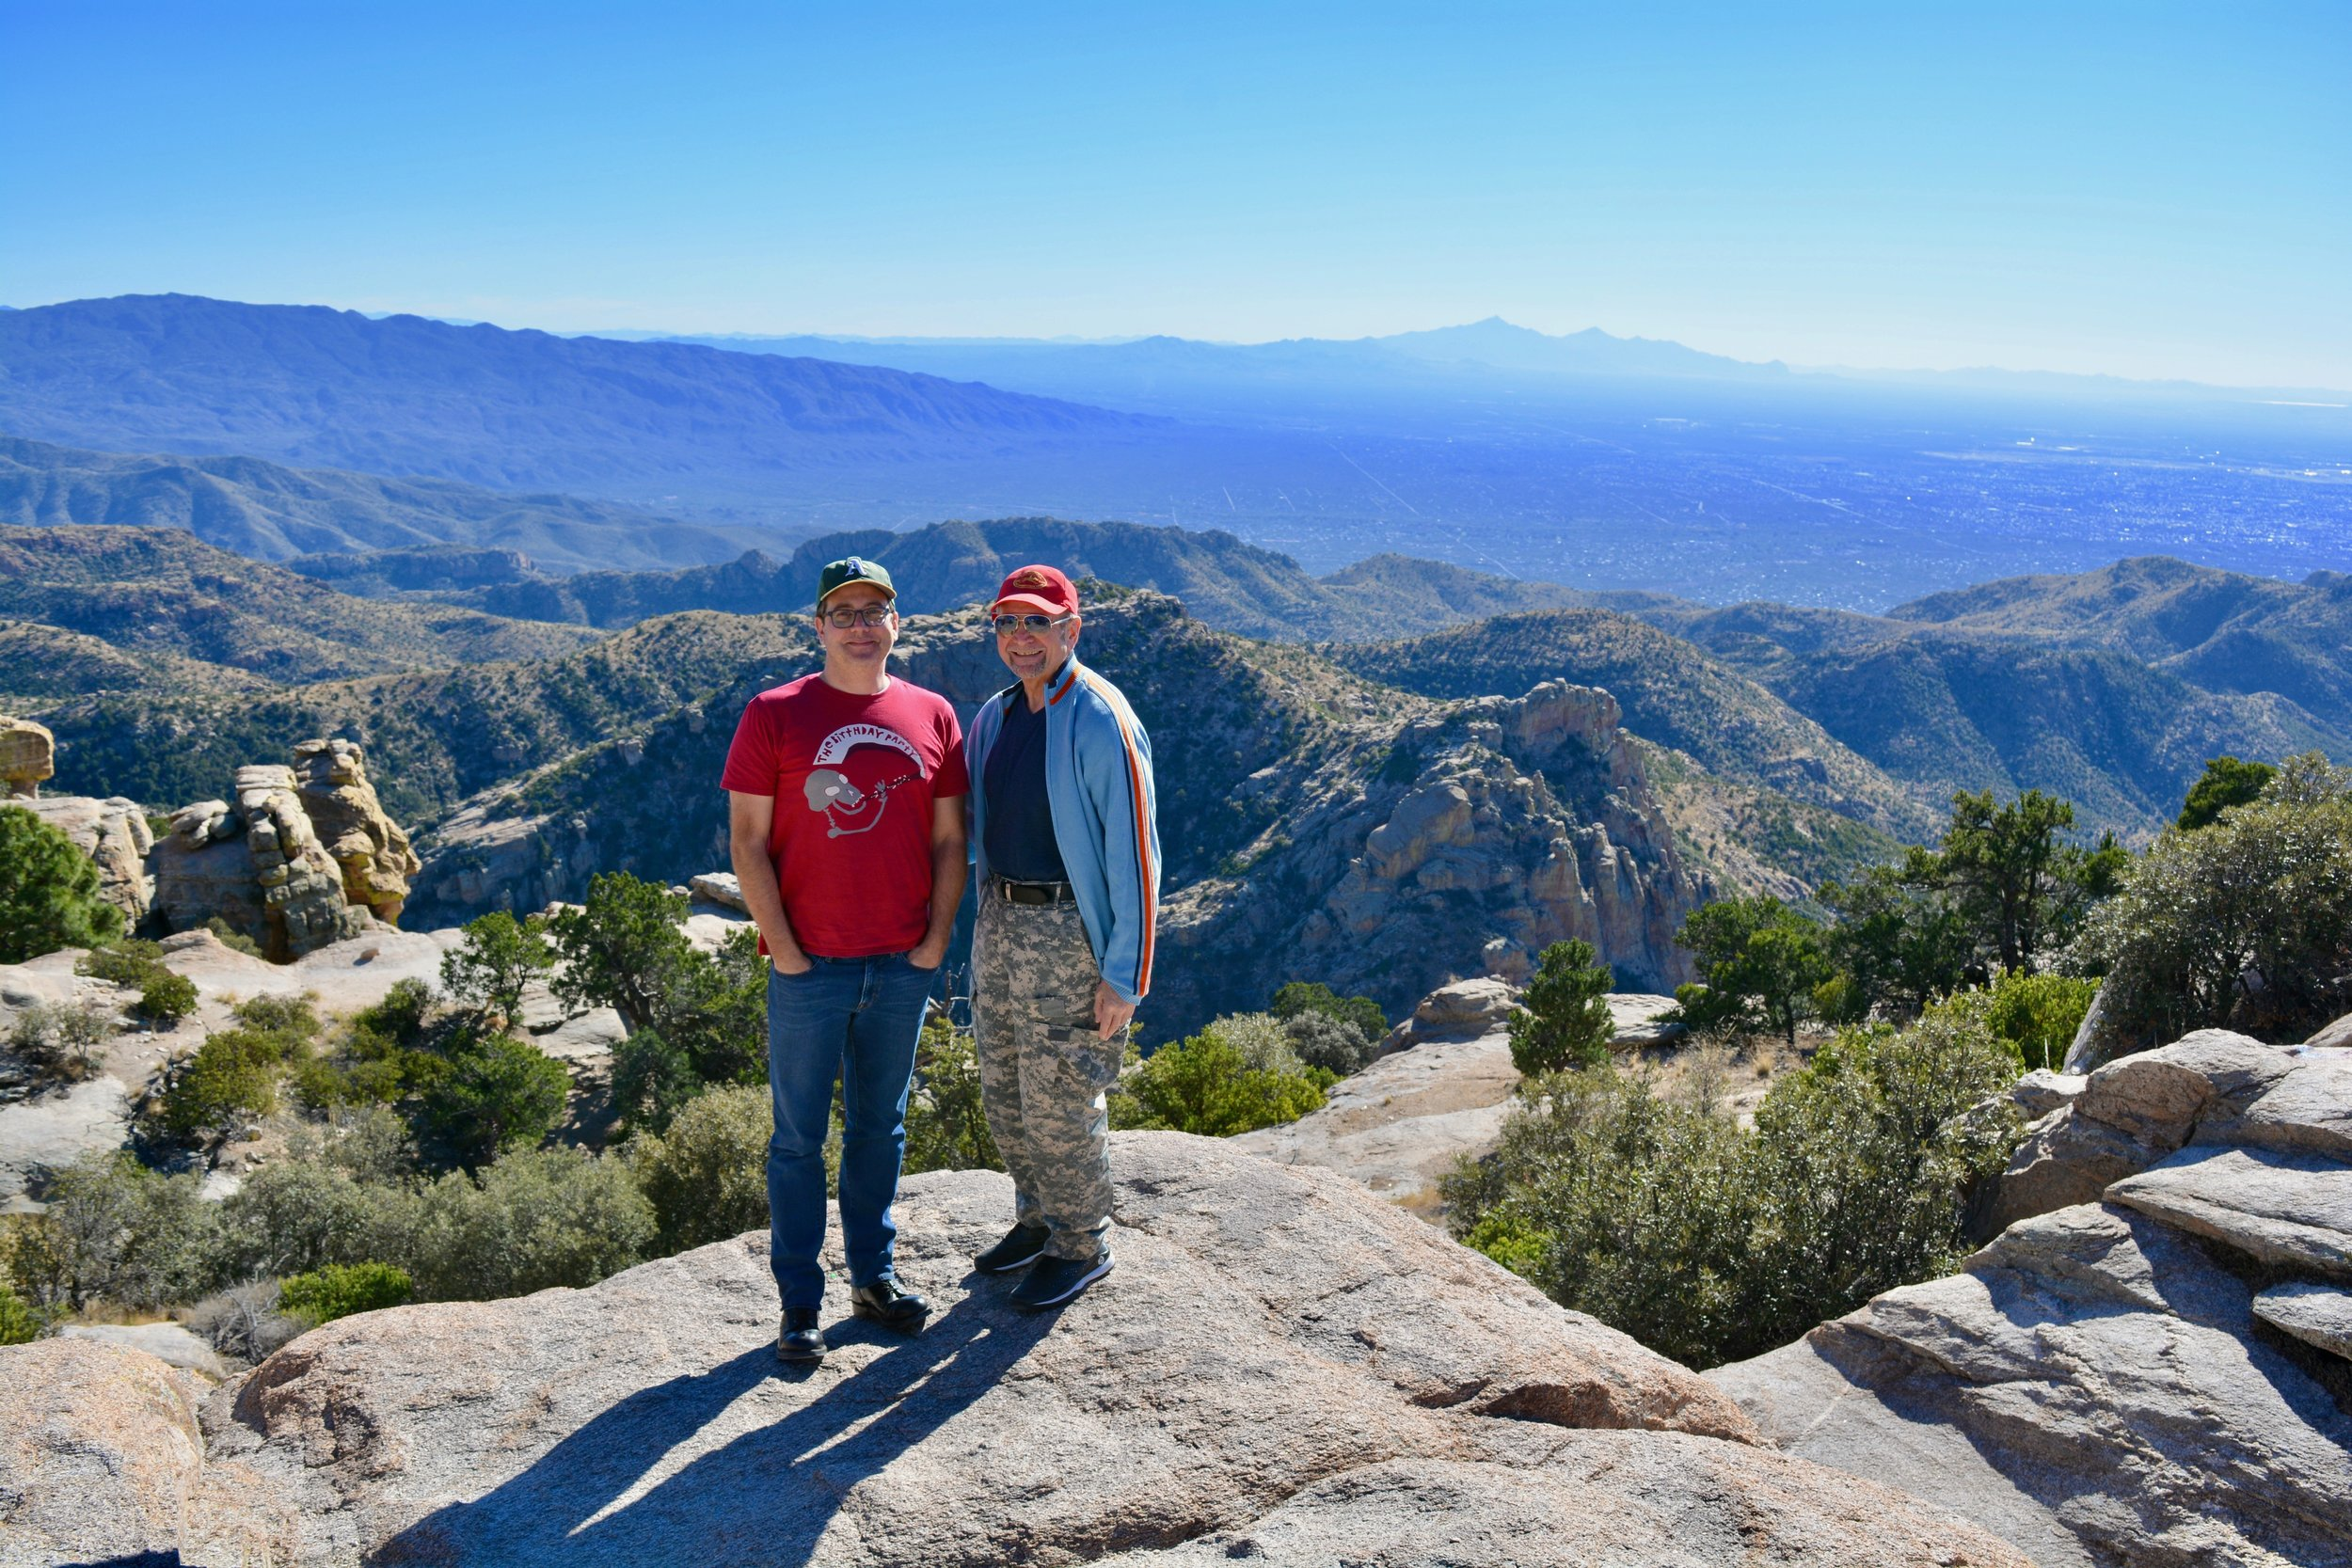 Aaron & Bobby on top of Mt. Lemmon